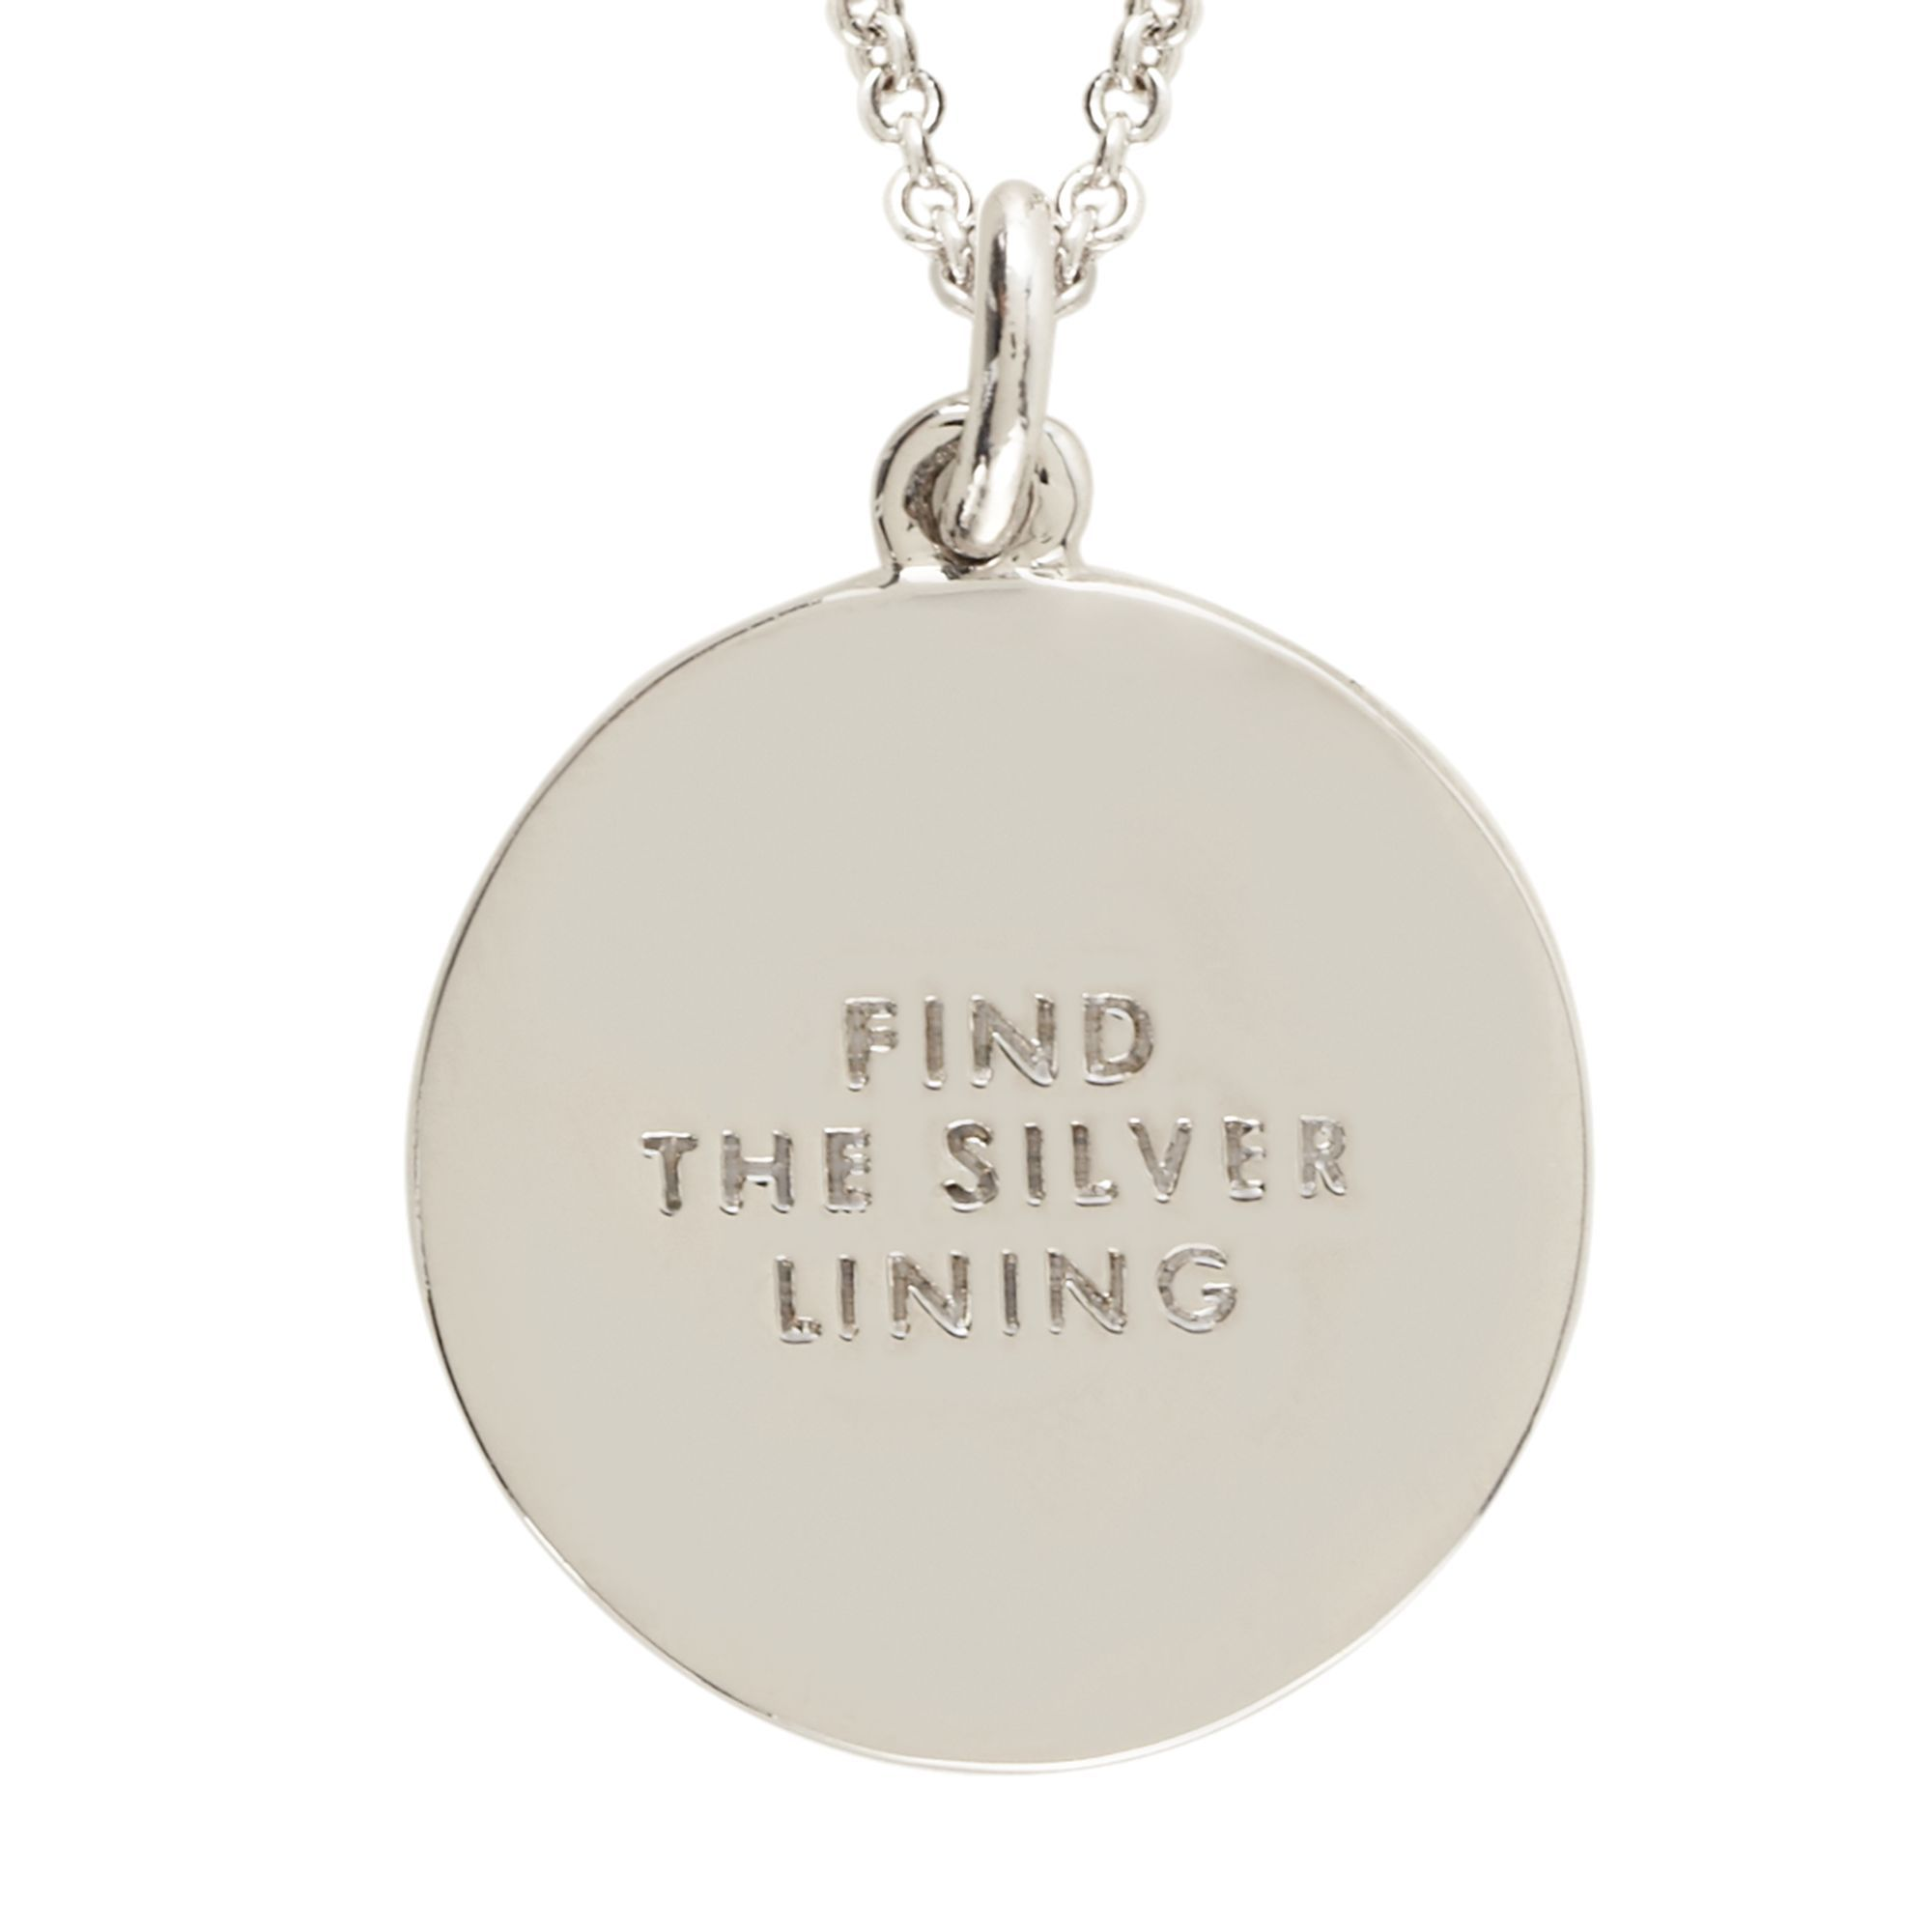 Find the silver lining idiom pendant jewels u baubles pinterest